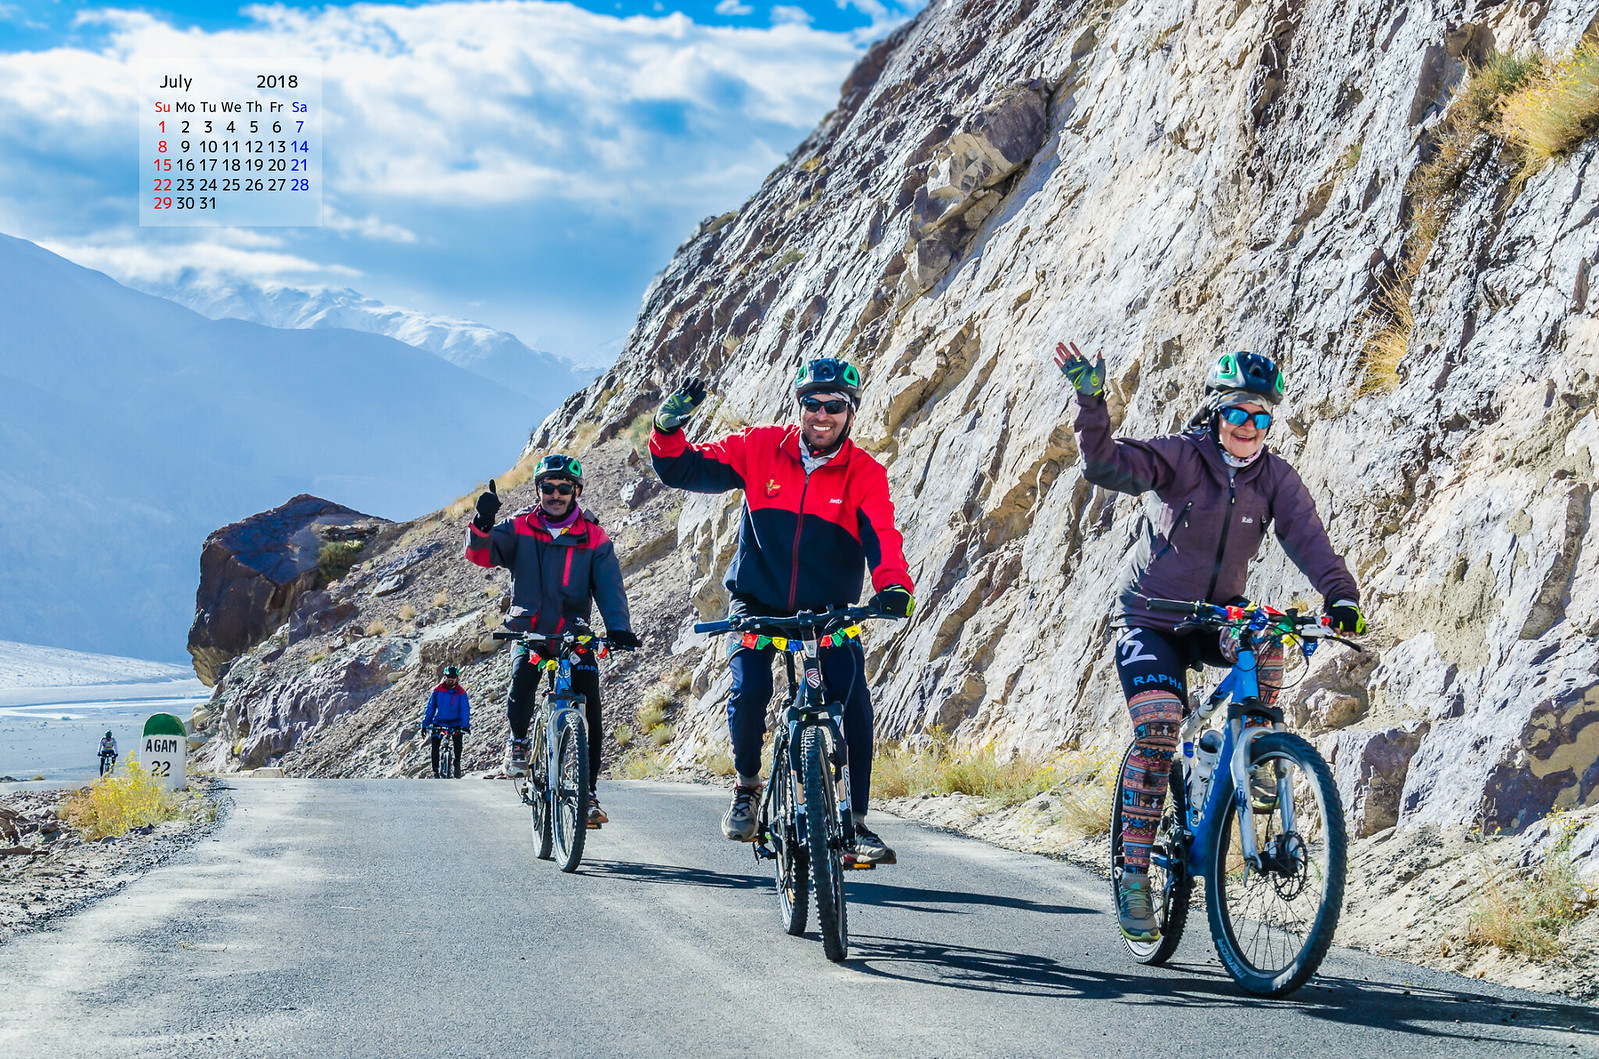 Free download July 2018 Calendar Wallpaper - Cycling In Ladakh